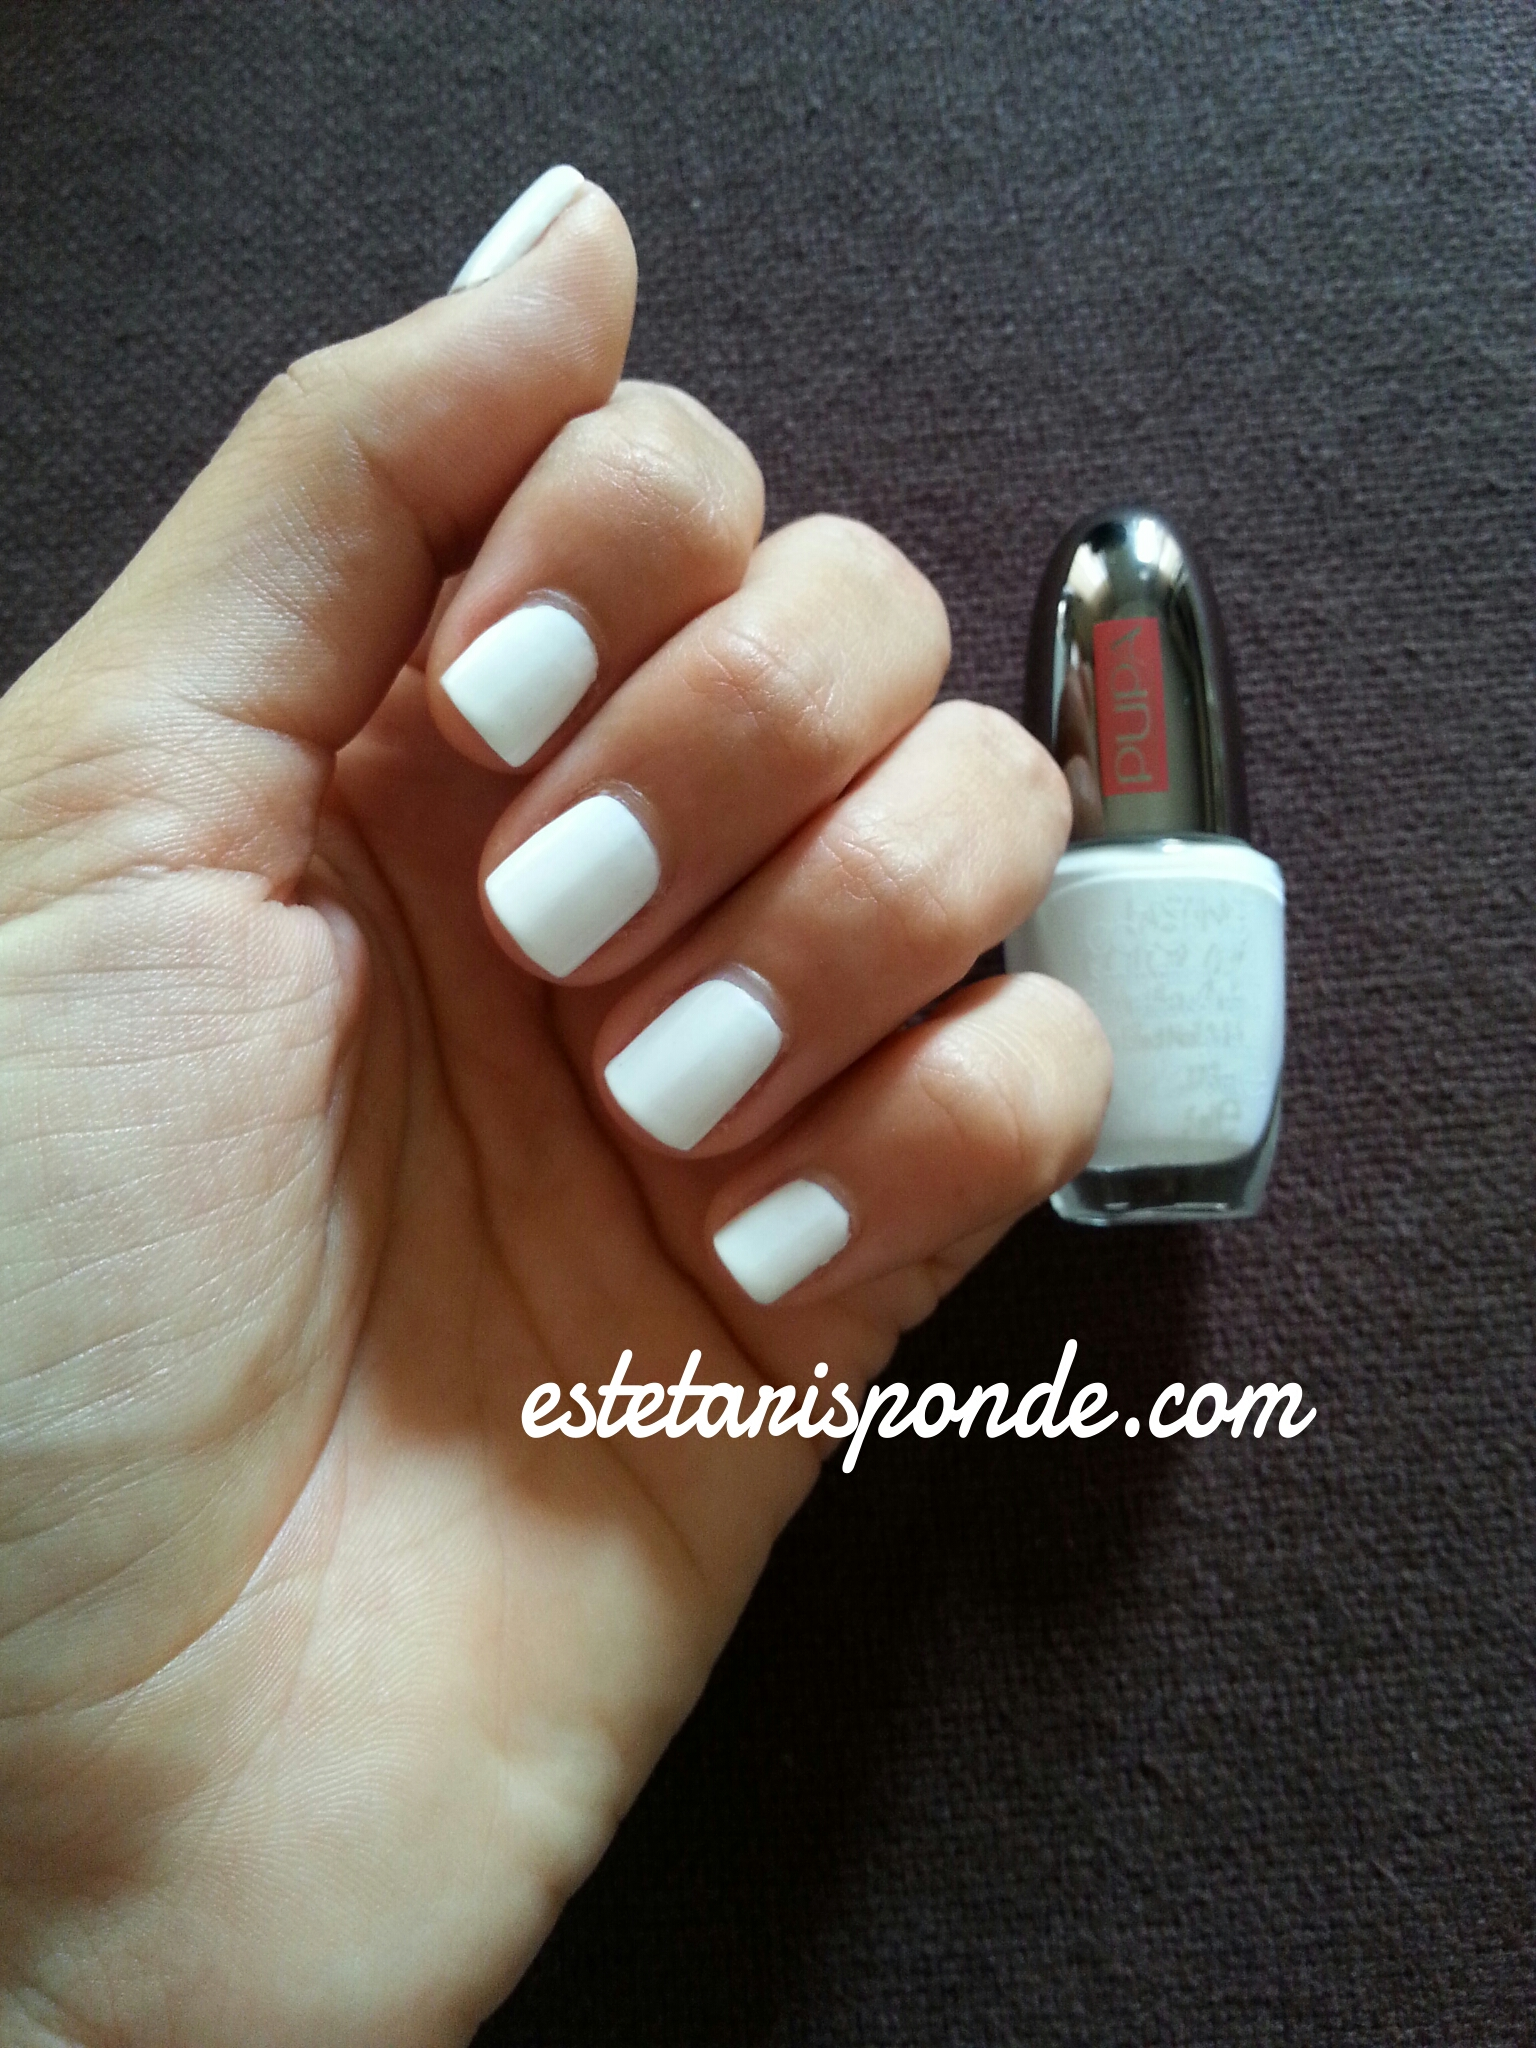 Favoloso PUPA Lasting Color gel #072: total white! - Esteta risponde IZ15